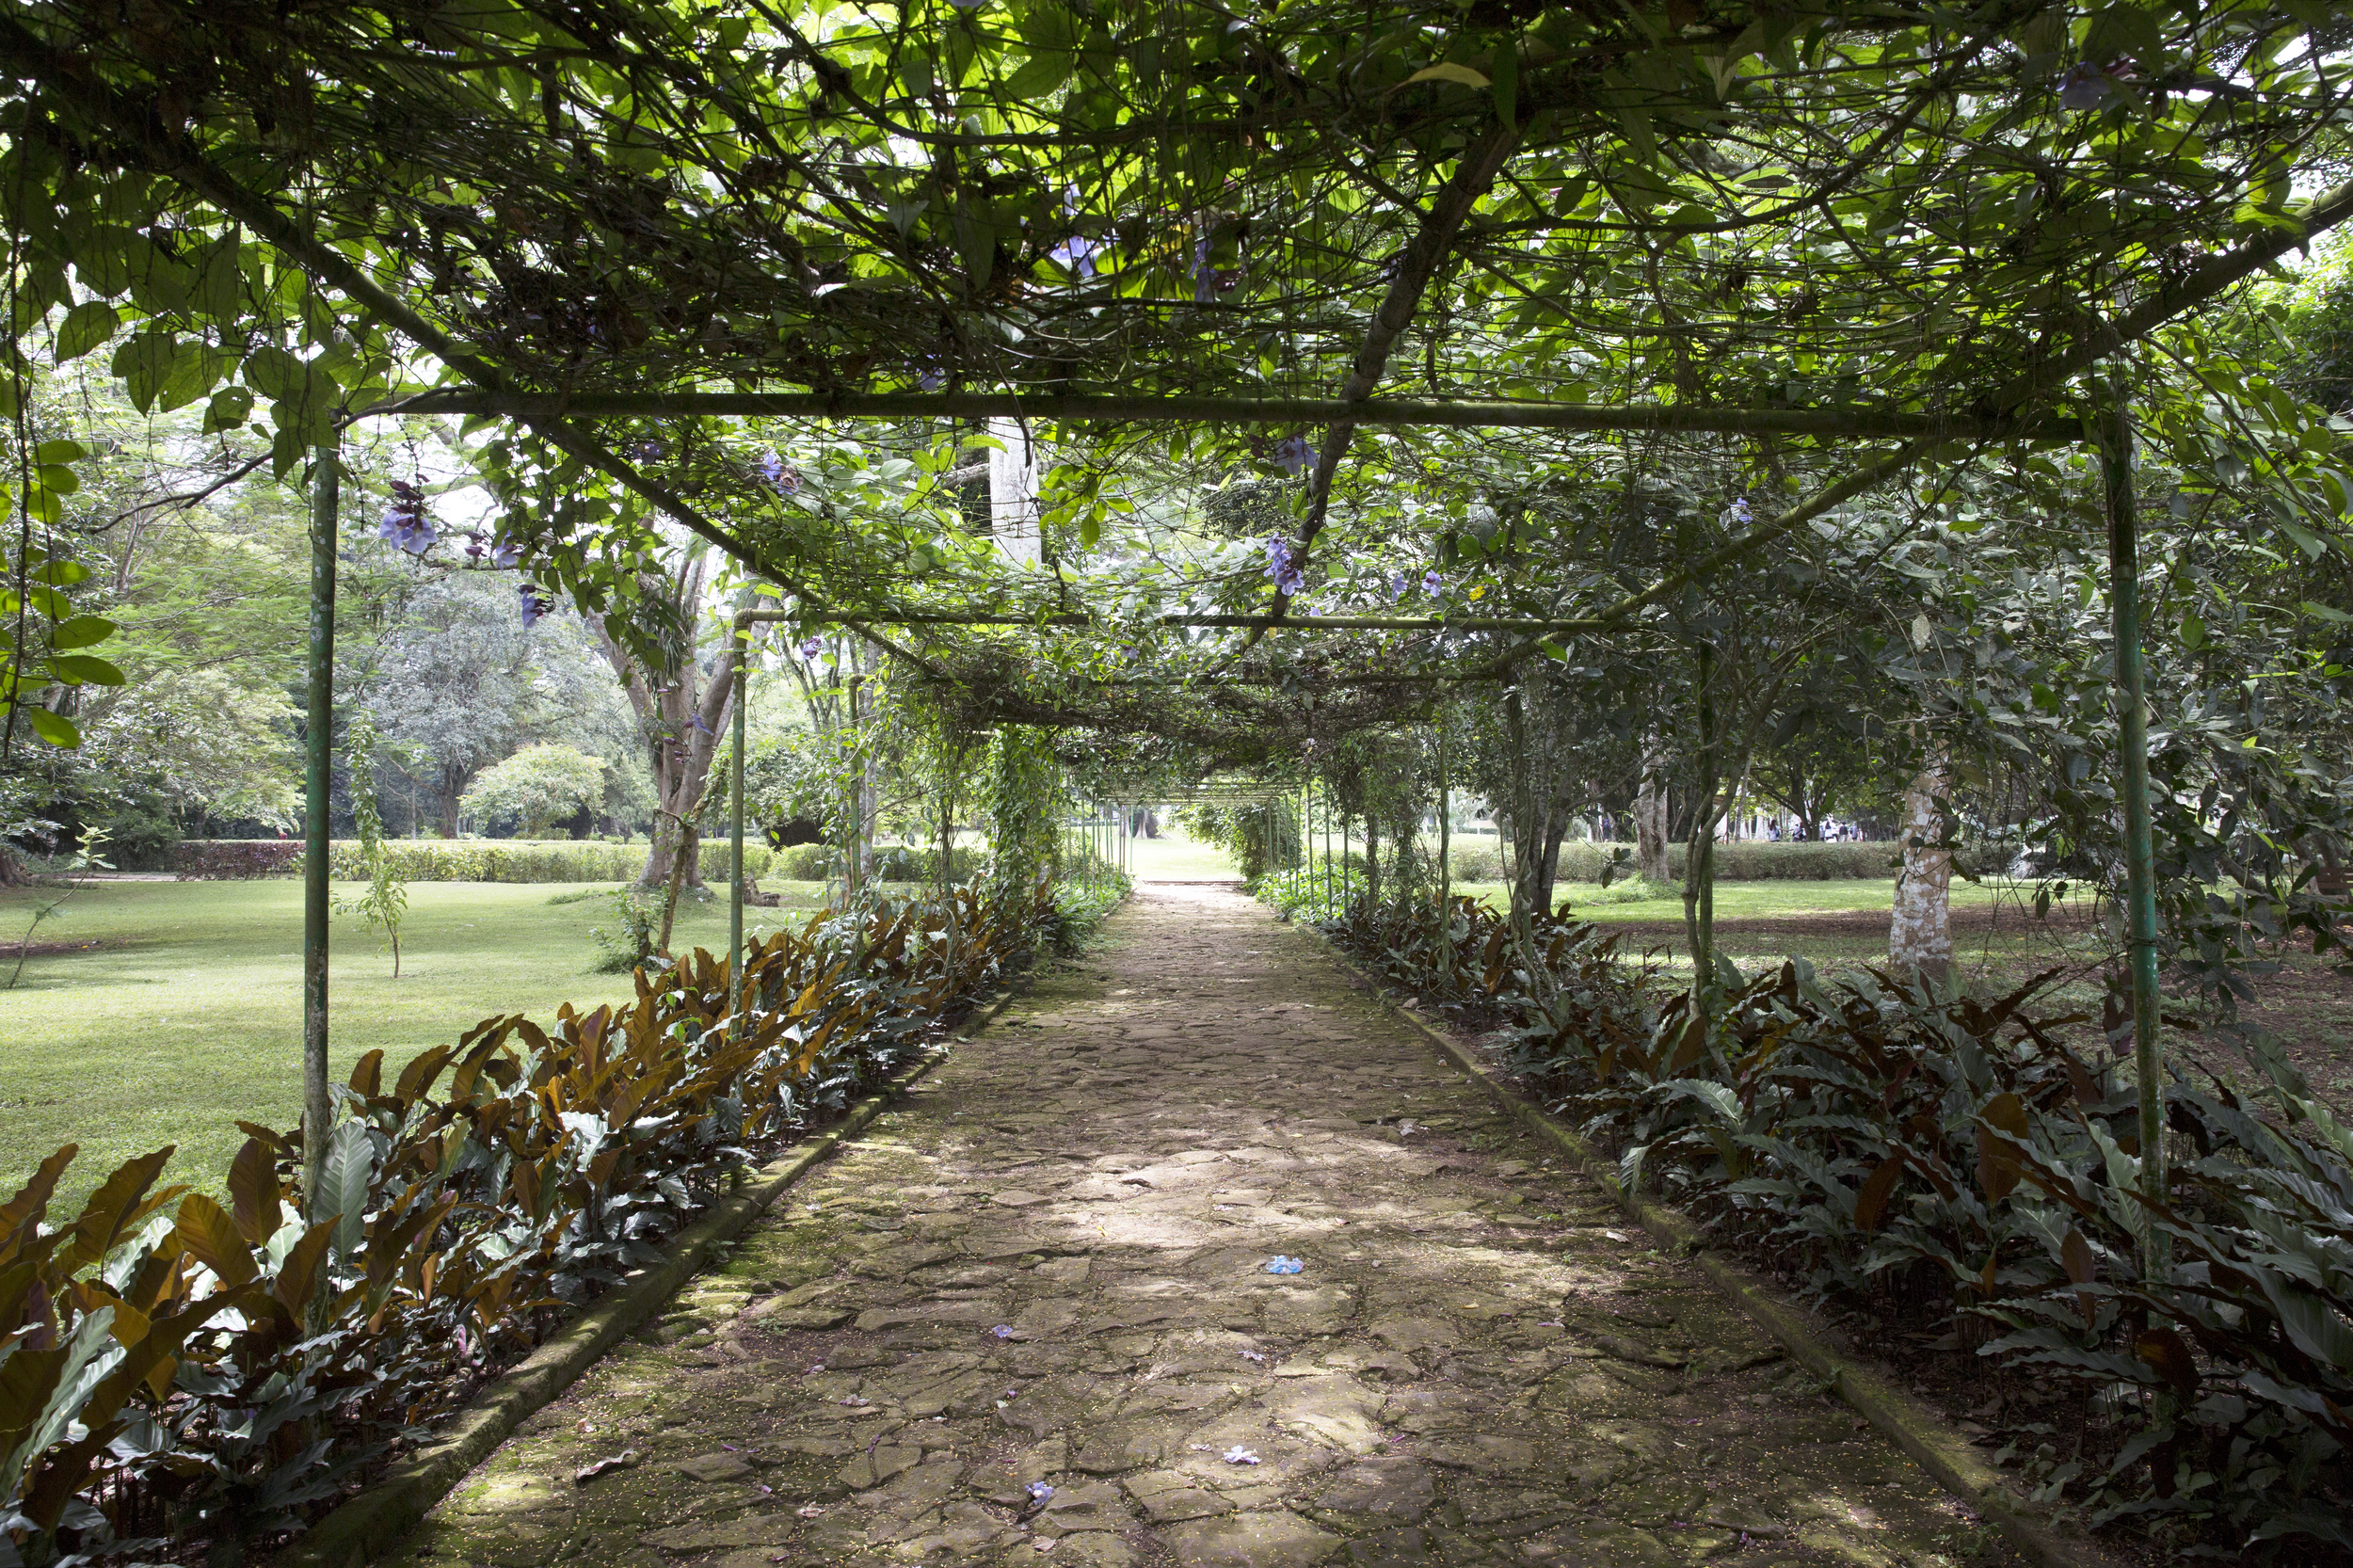 One of many beautiful walkways within the gardens.